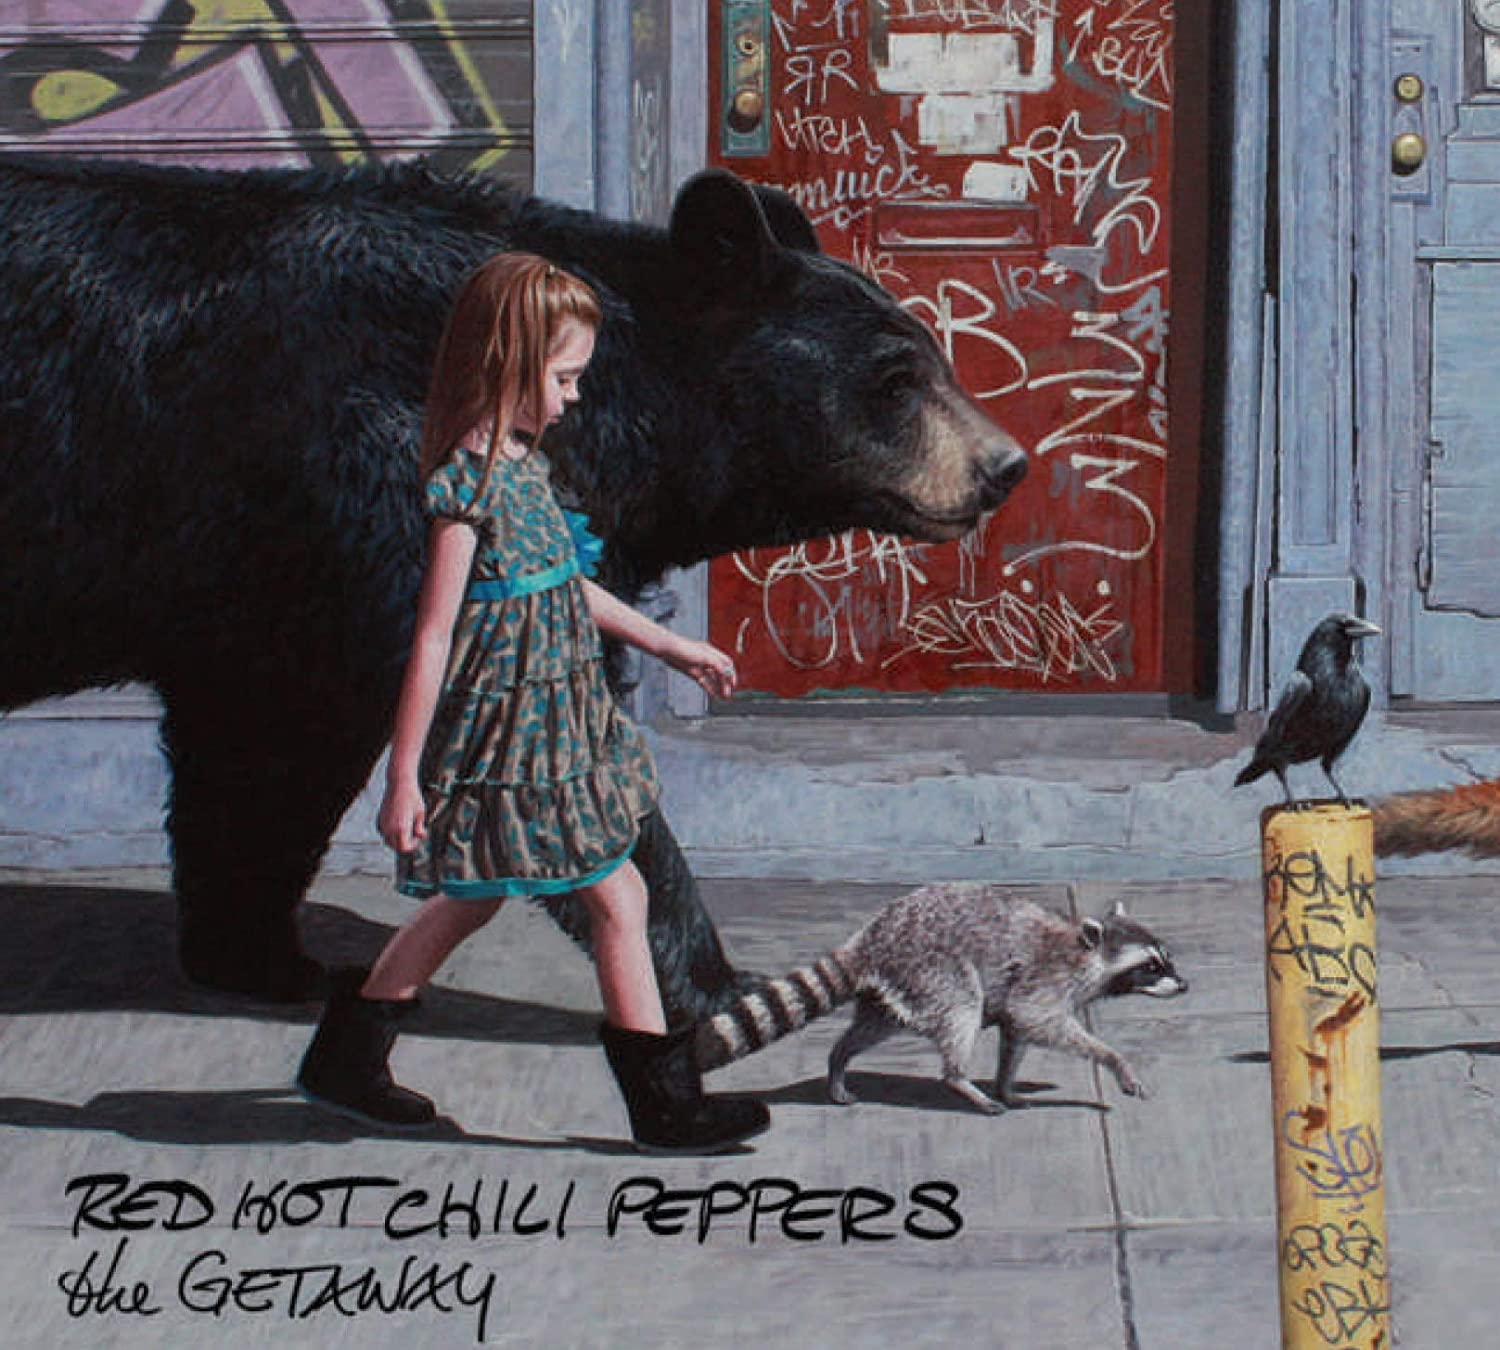 Risultato immagini per red hot chili peppers the getaway